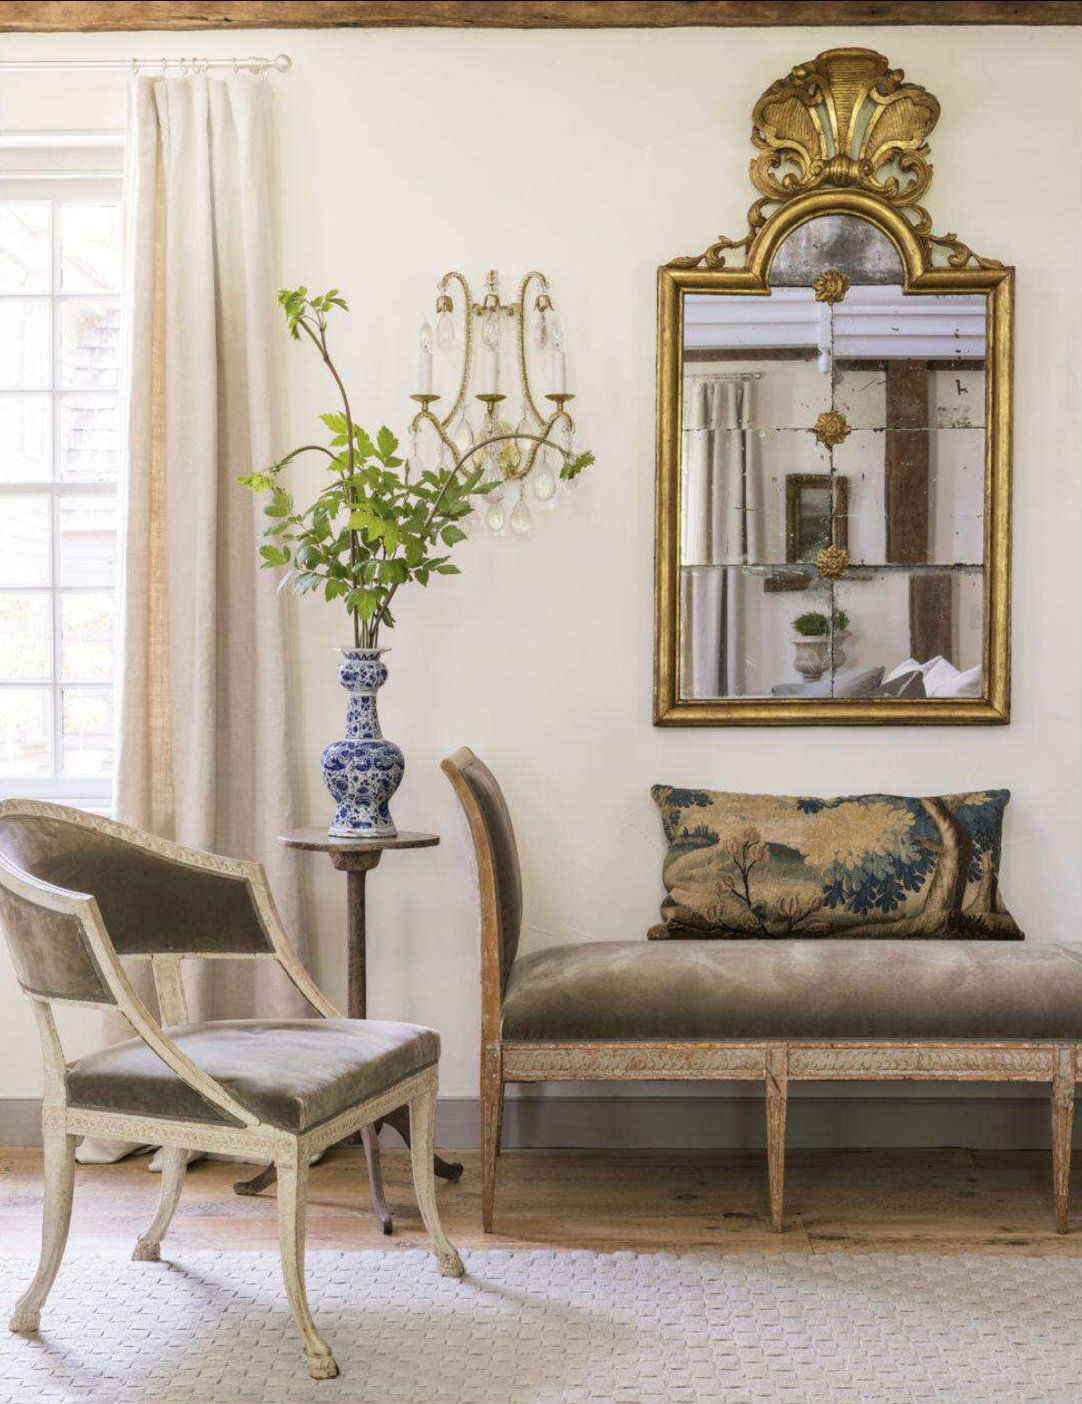 Designers Brooke And Steve Giannetti Merge 17th And 18th Century